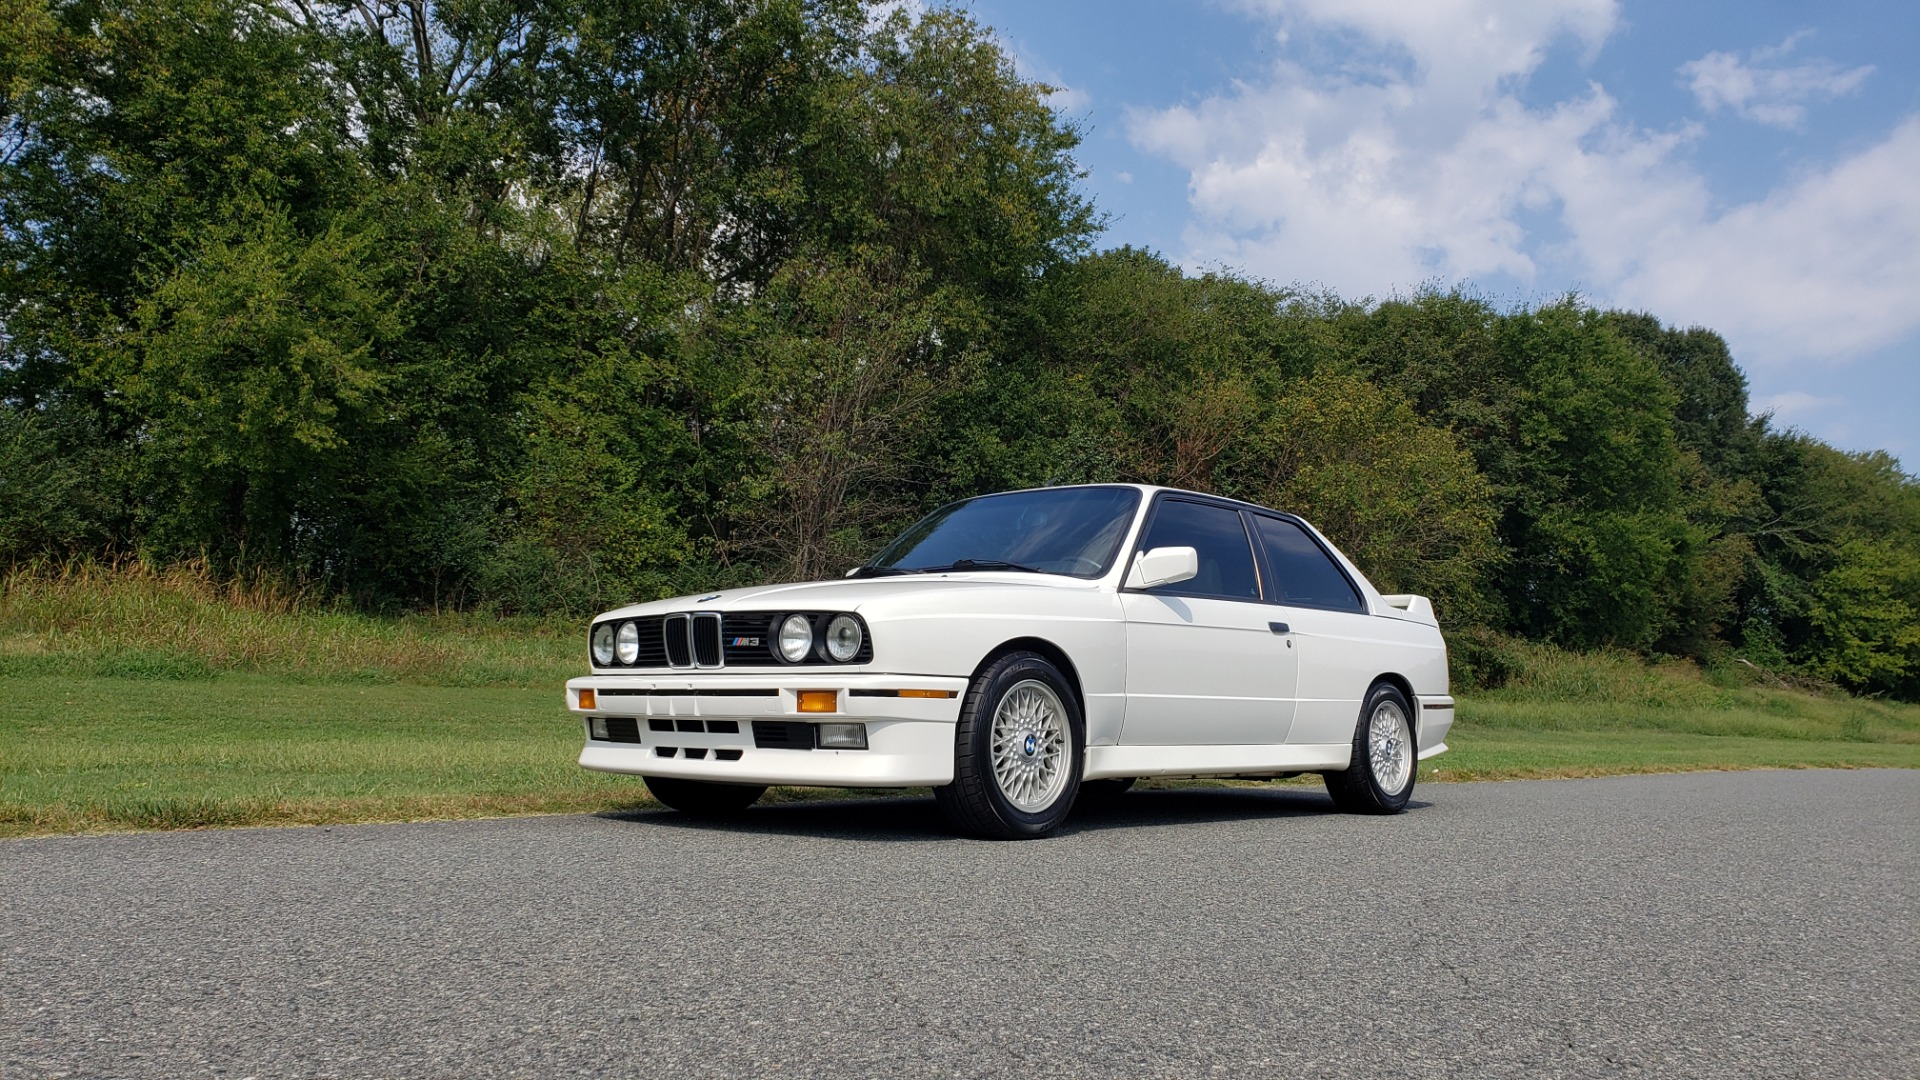 Used 1989 BMW M3 COUPE 2DR / 5-SPEED MAN / LOW MILES / SUPER CLEAN for sale Sold at Formula Imports in Charlotte NC 28227 17